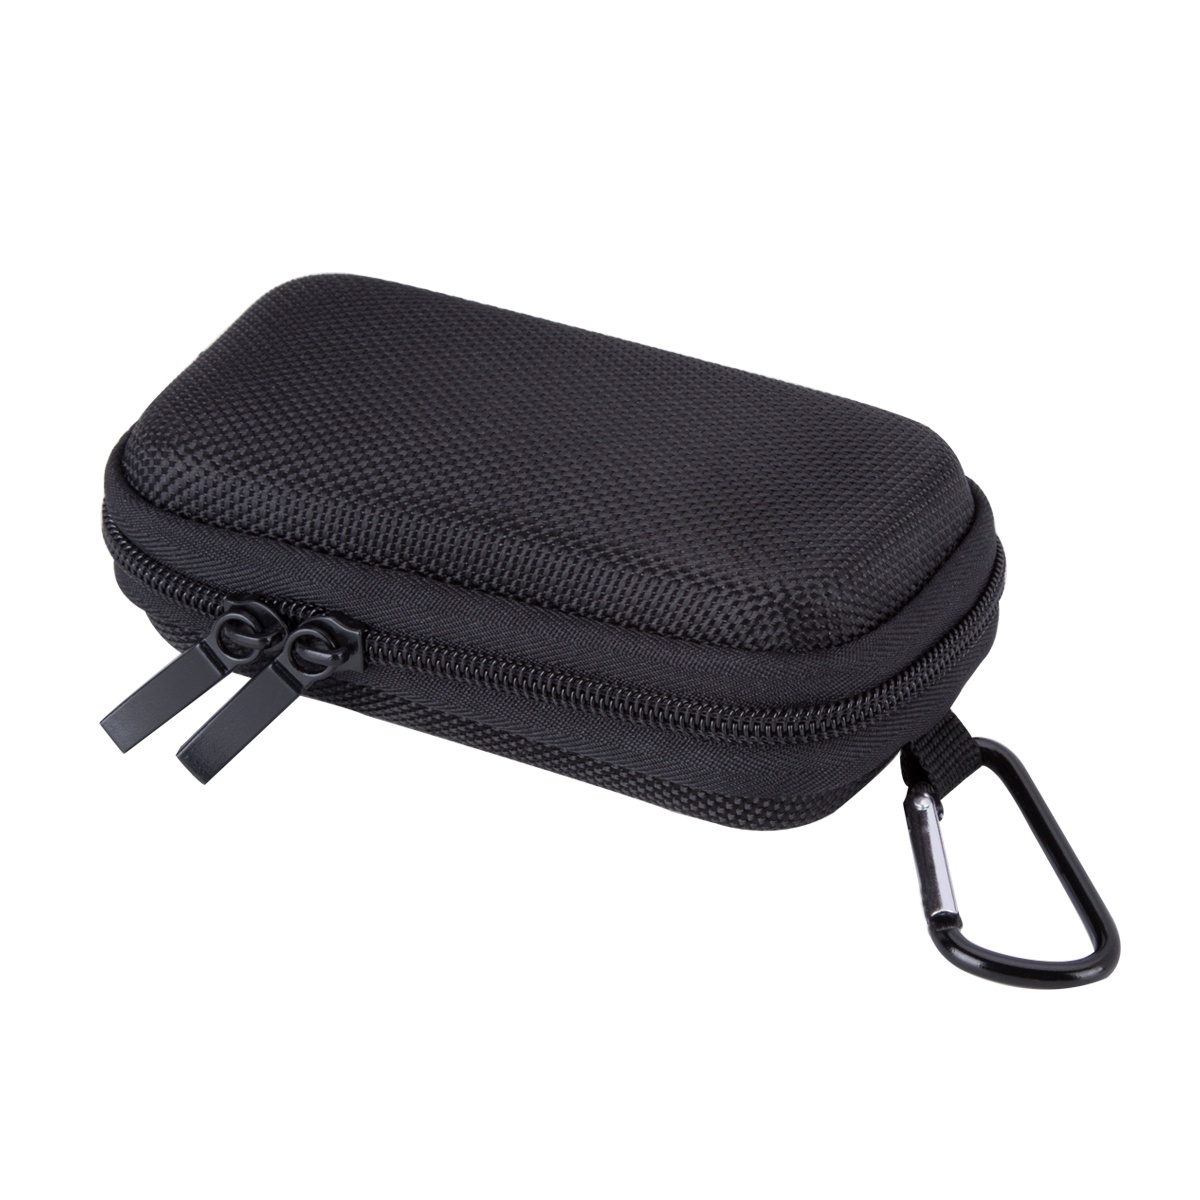 AGPTEK Portable Carrying Case for MP3 Players, Sandisk, Ipod Nano, Ipod Shuffle,